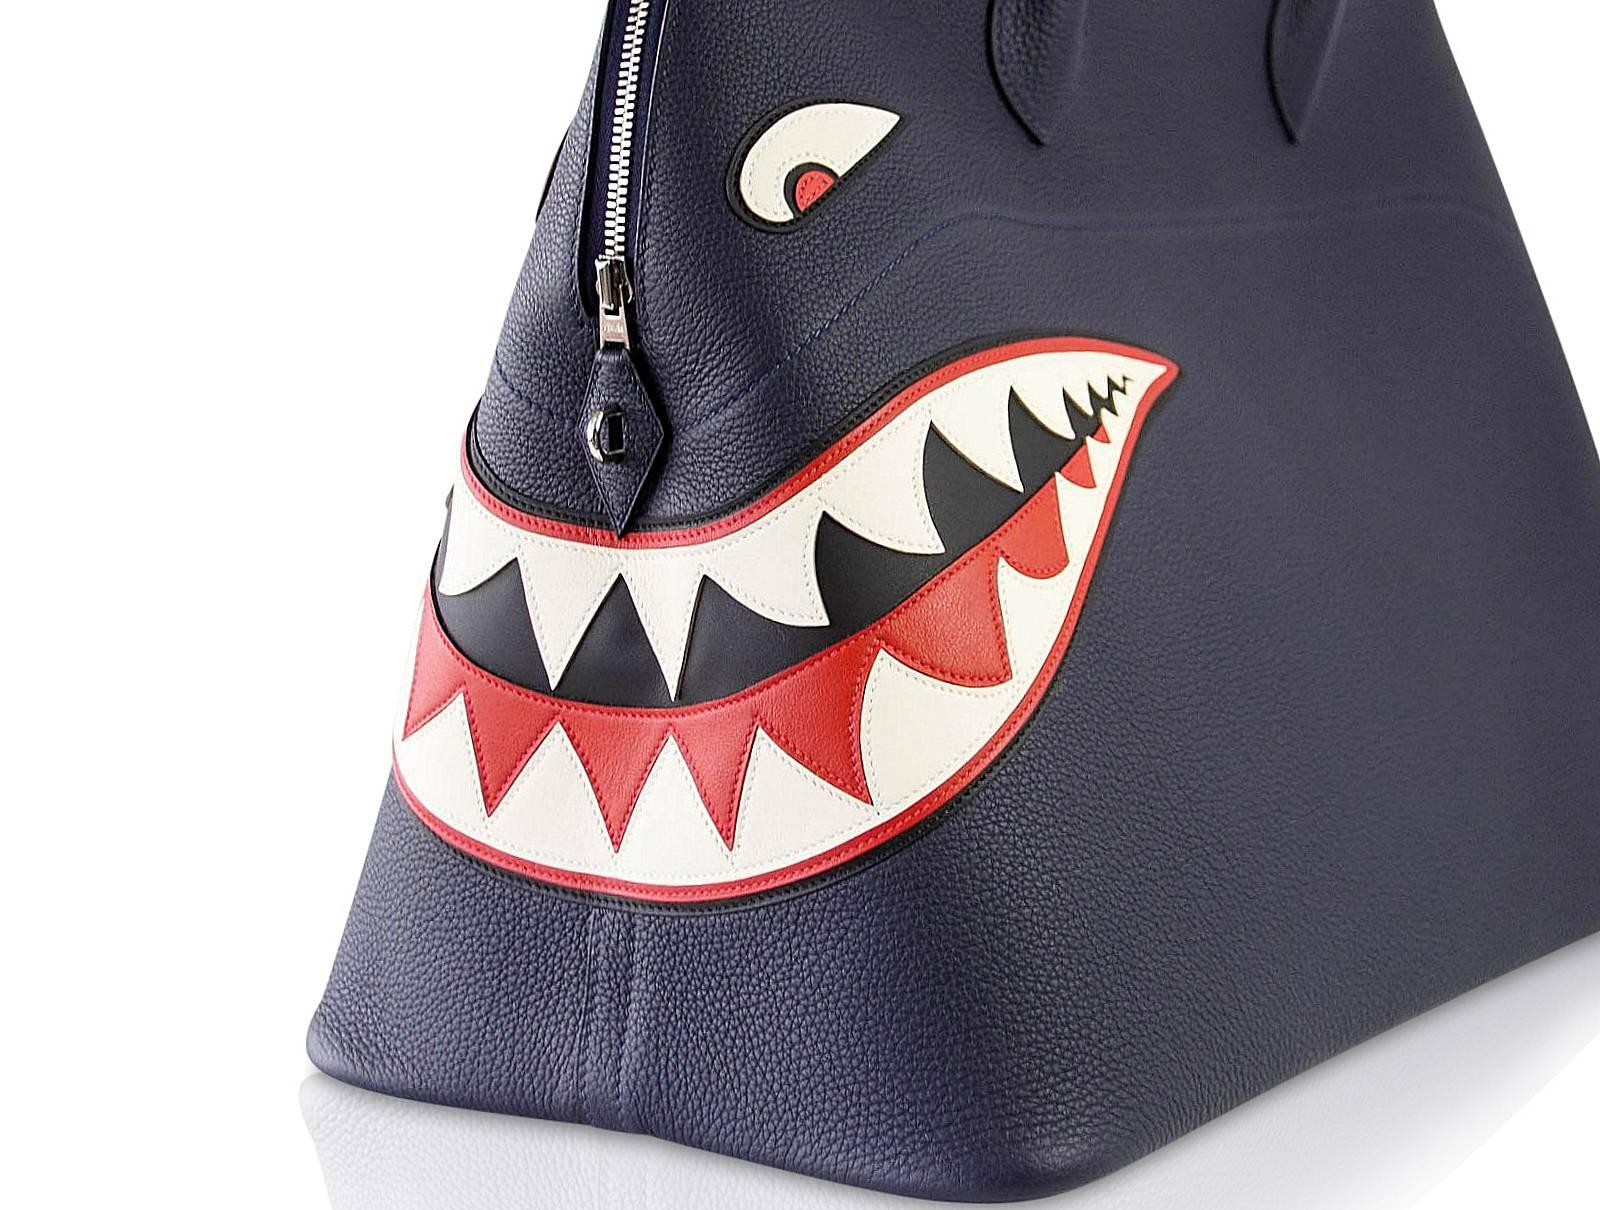 30155e32ee1c ... gold palladium limited edition for sale at 1stdibs 7dca7 where to buy  hermes bolide runway bag shark monster unisex blue indigo limited edition  for sale ...